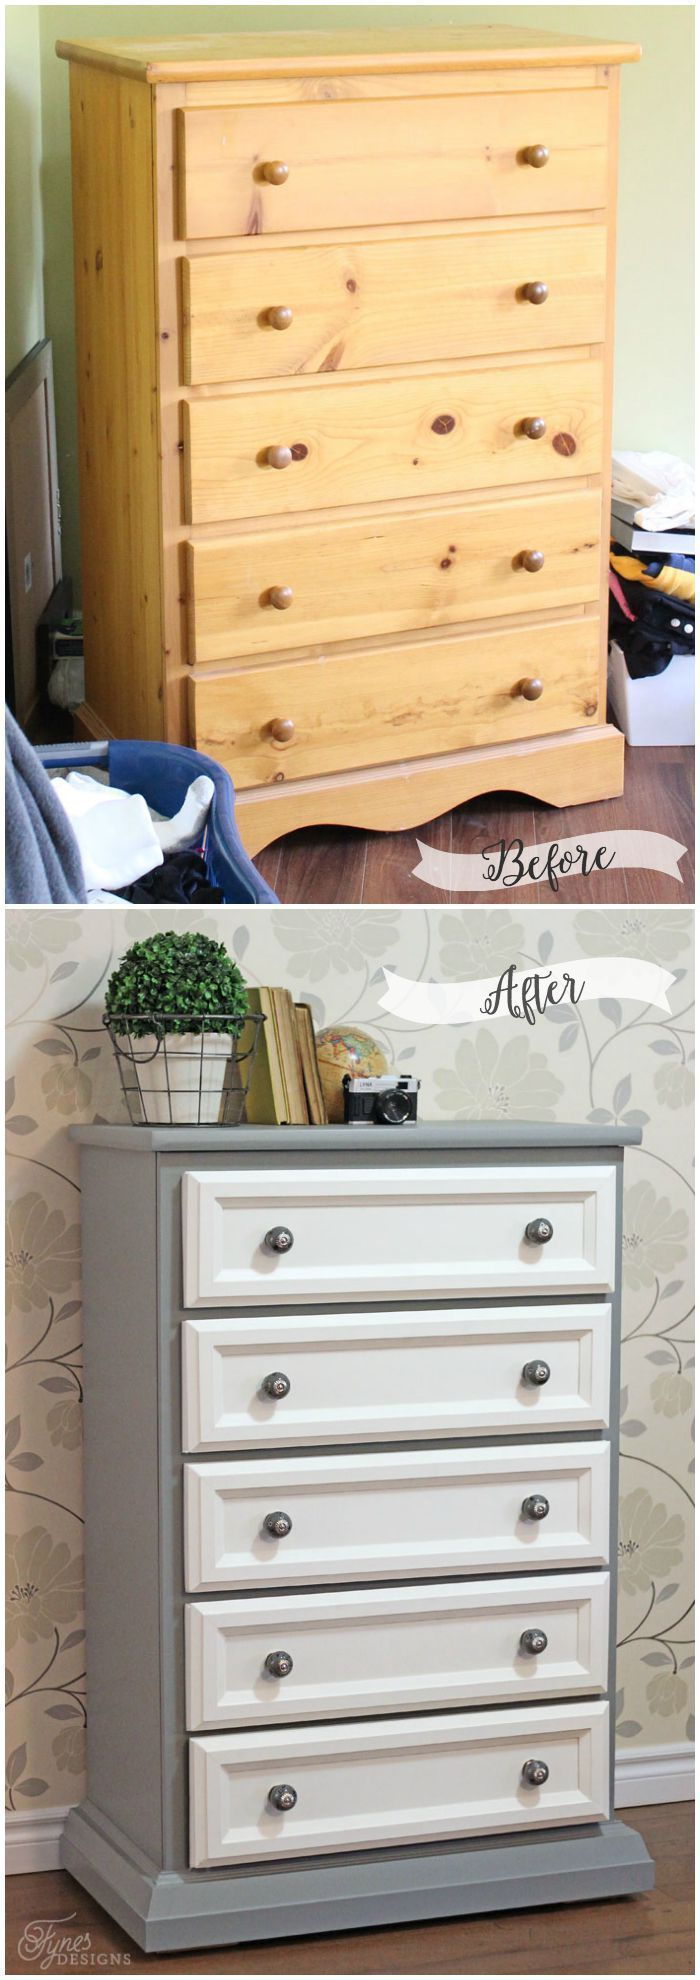 bedroom furniture makeover. Tall Dresser Makeover Tutorial With Trim And Paint Bedroom Furniture N